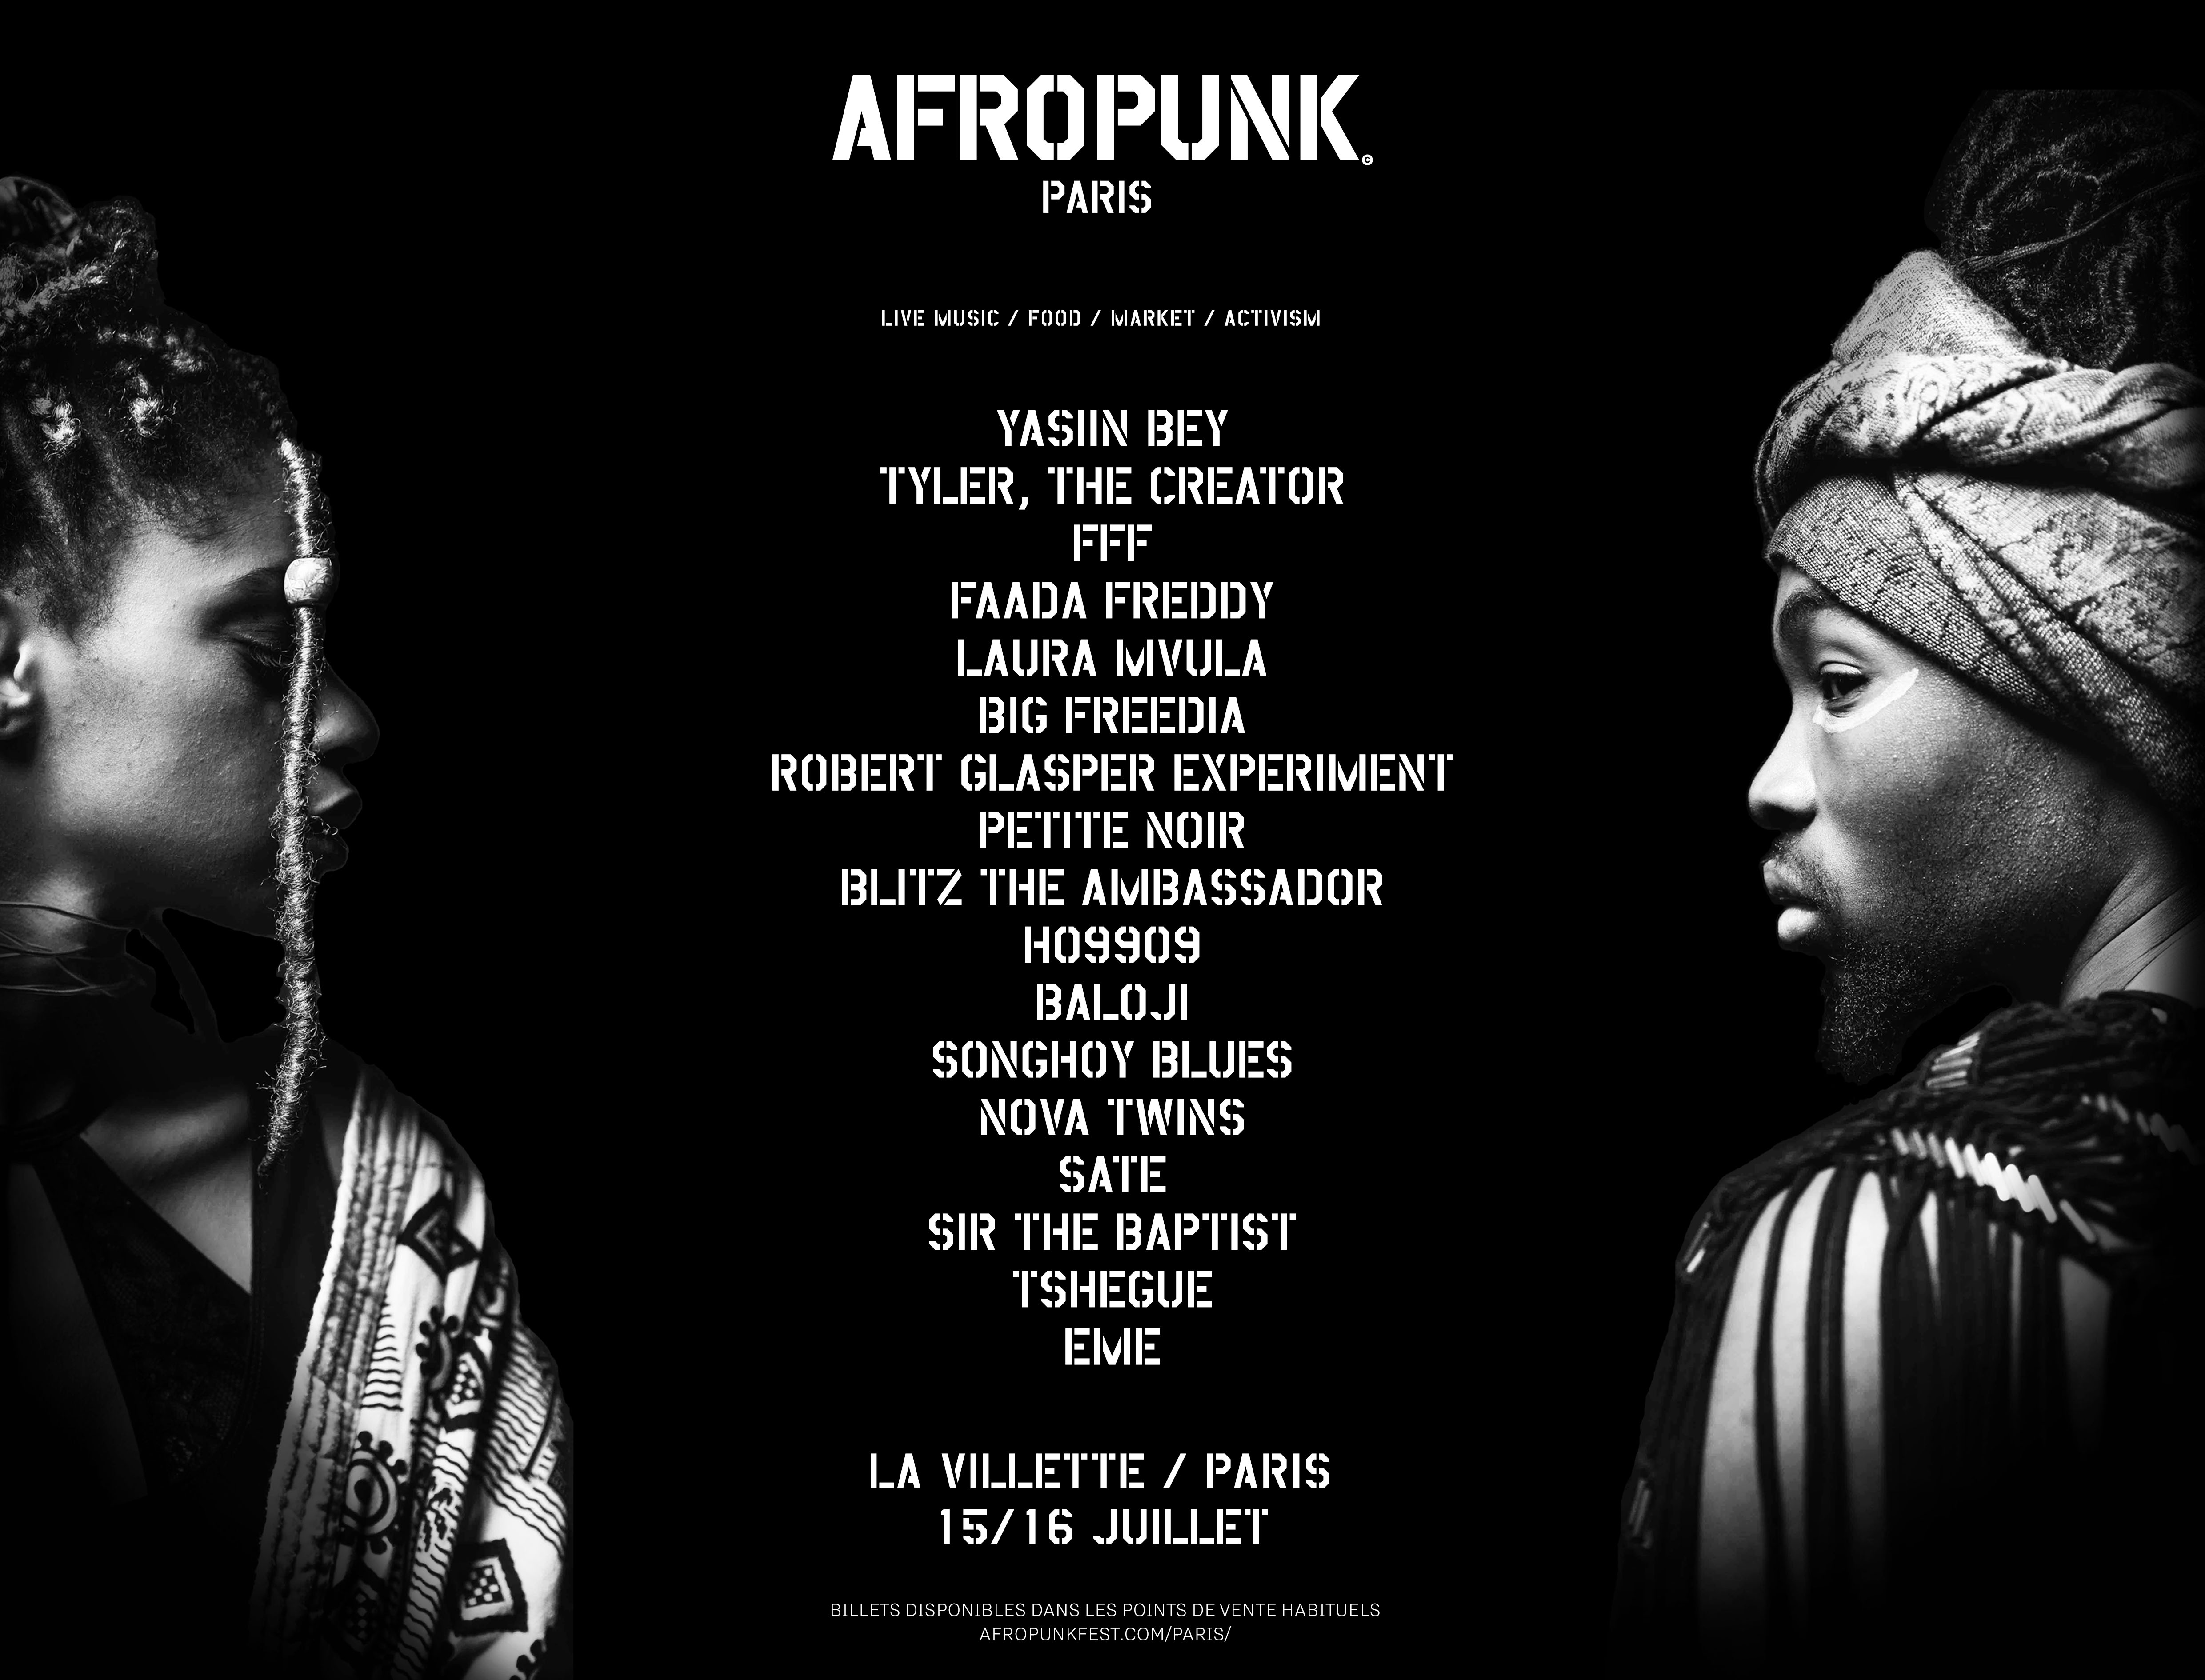 AFROPUNK-PARIS-DOUBLE-march-29